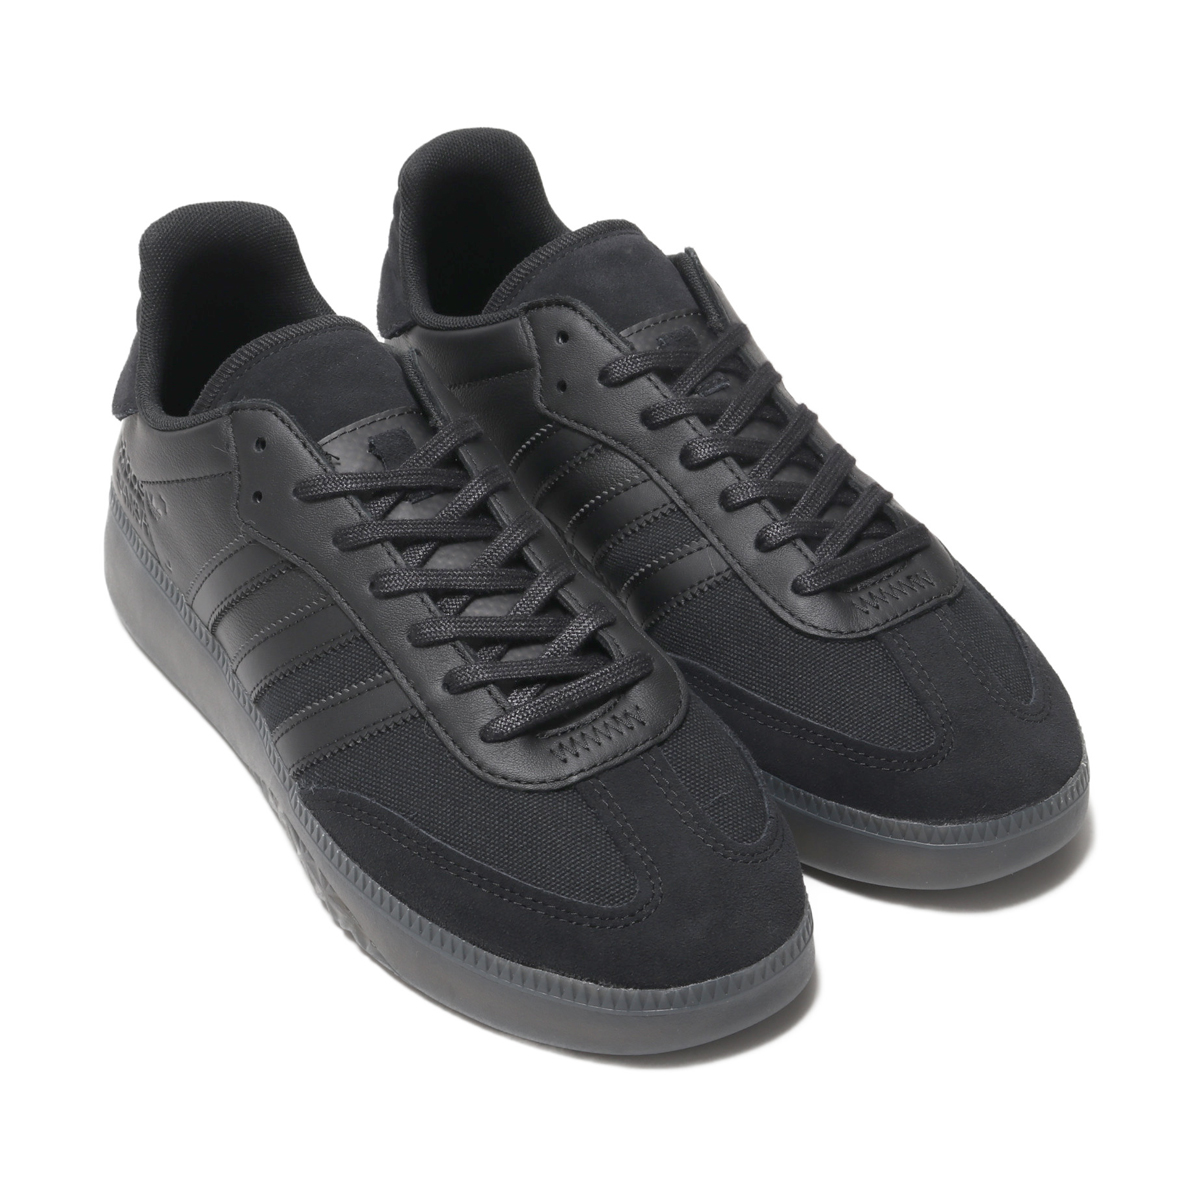 adidas Originals SAMBA RM (CORE BLACKCORE BLACKFTWR WHITE) (Adidas originals samba RM)